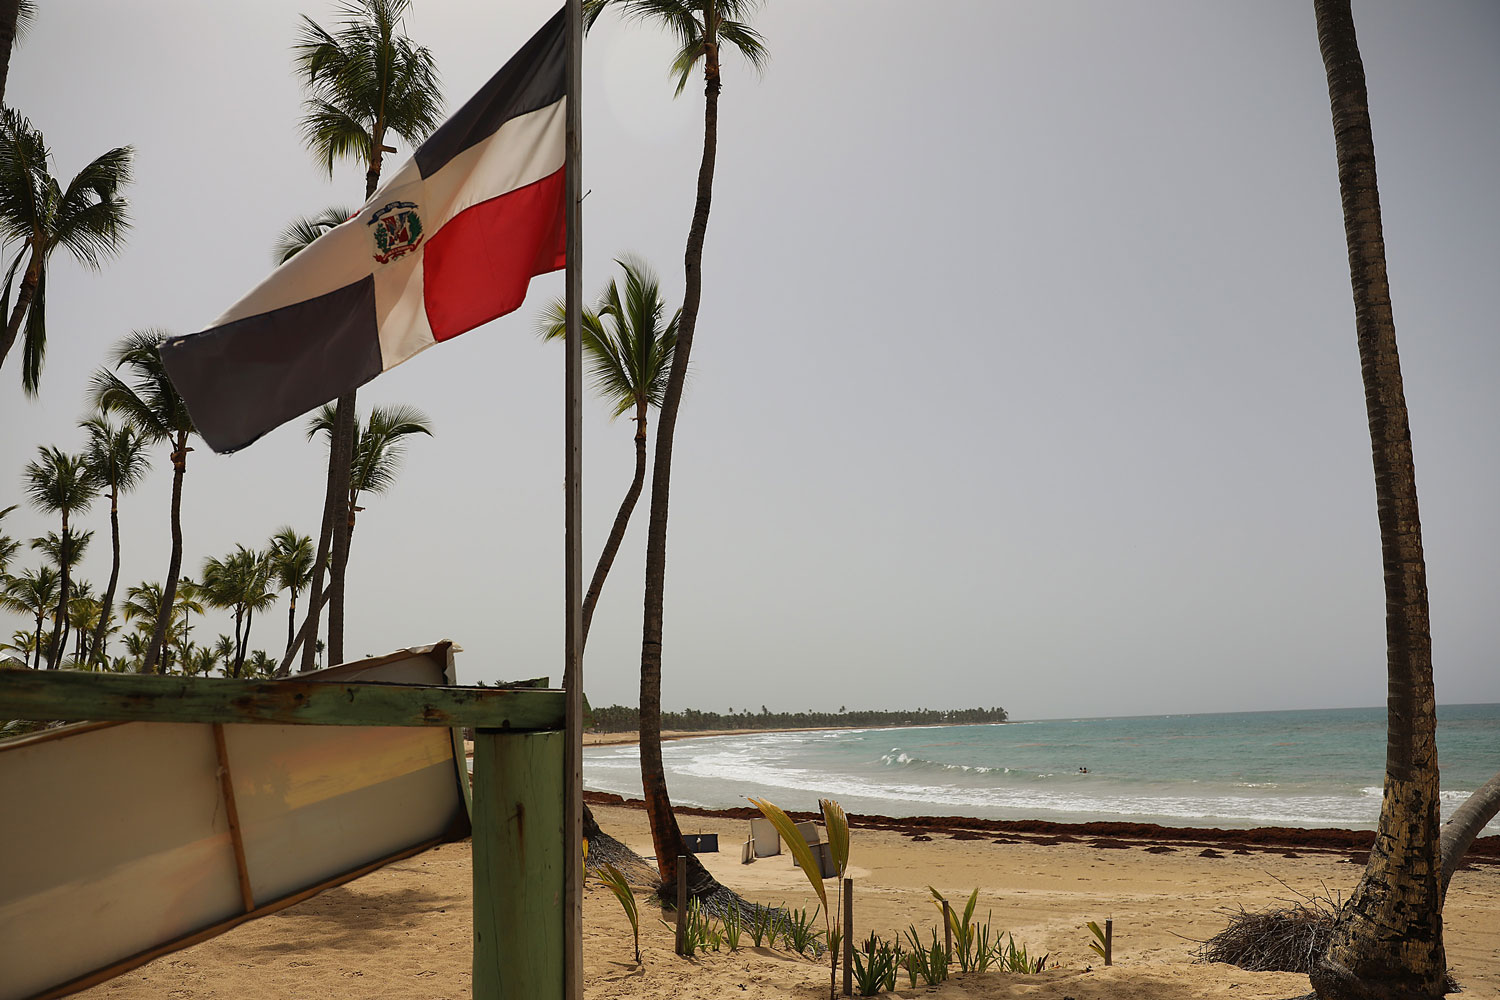 Is Counterfeit Alcohol Behind the Dominican Republic Deaths?